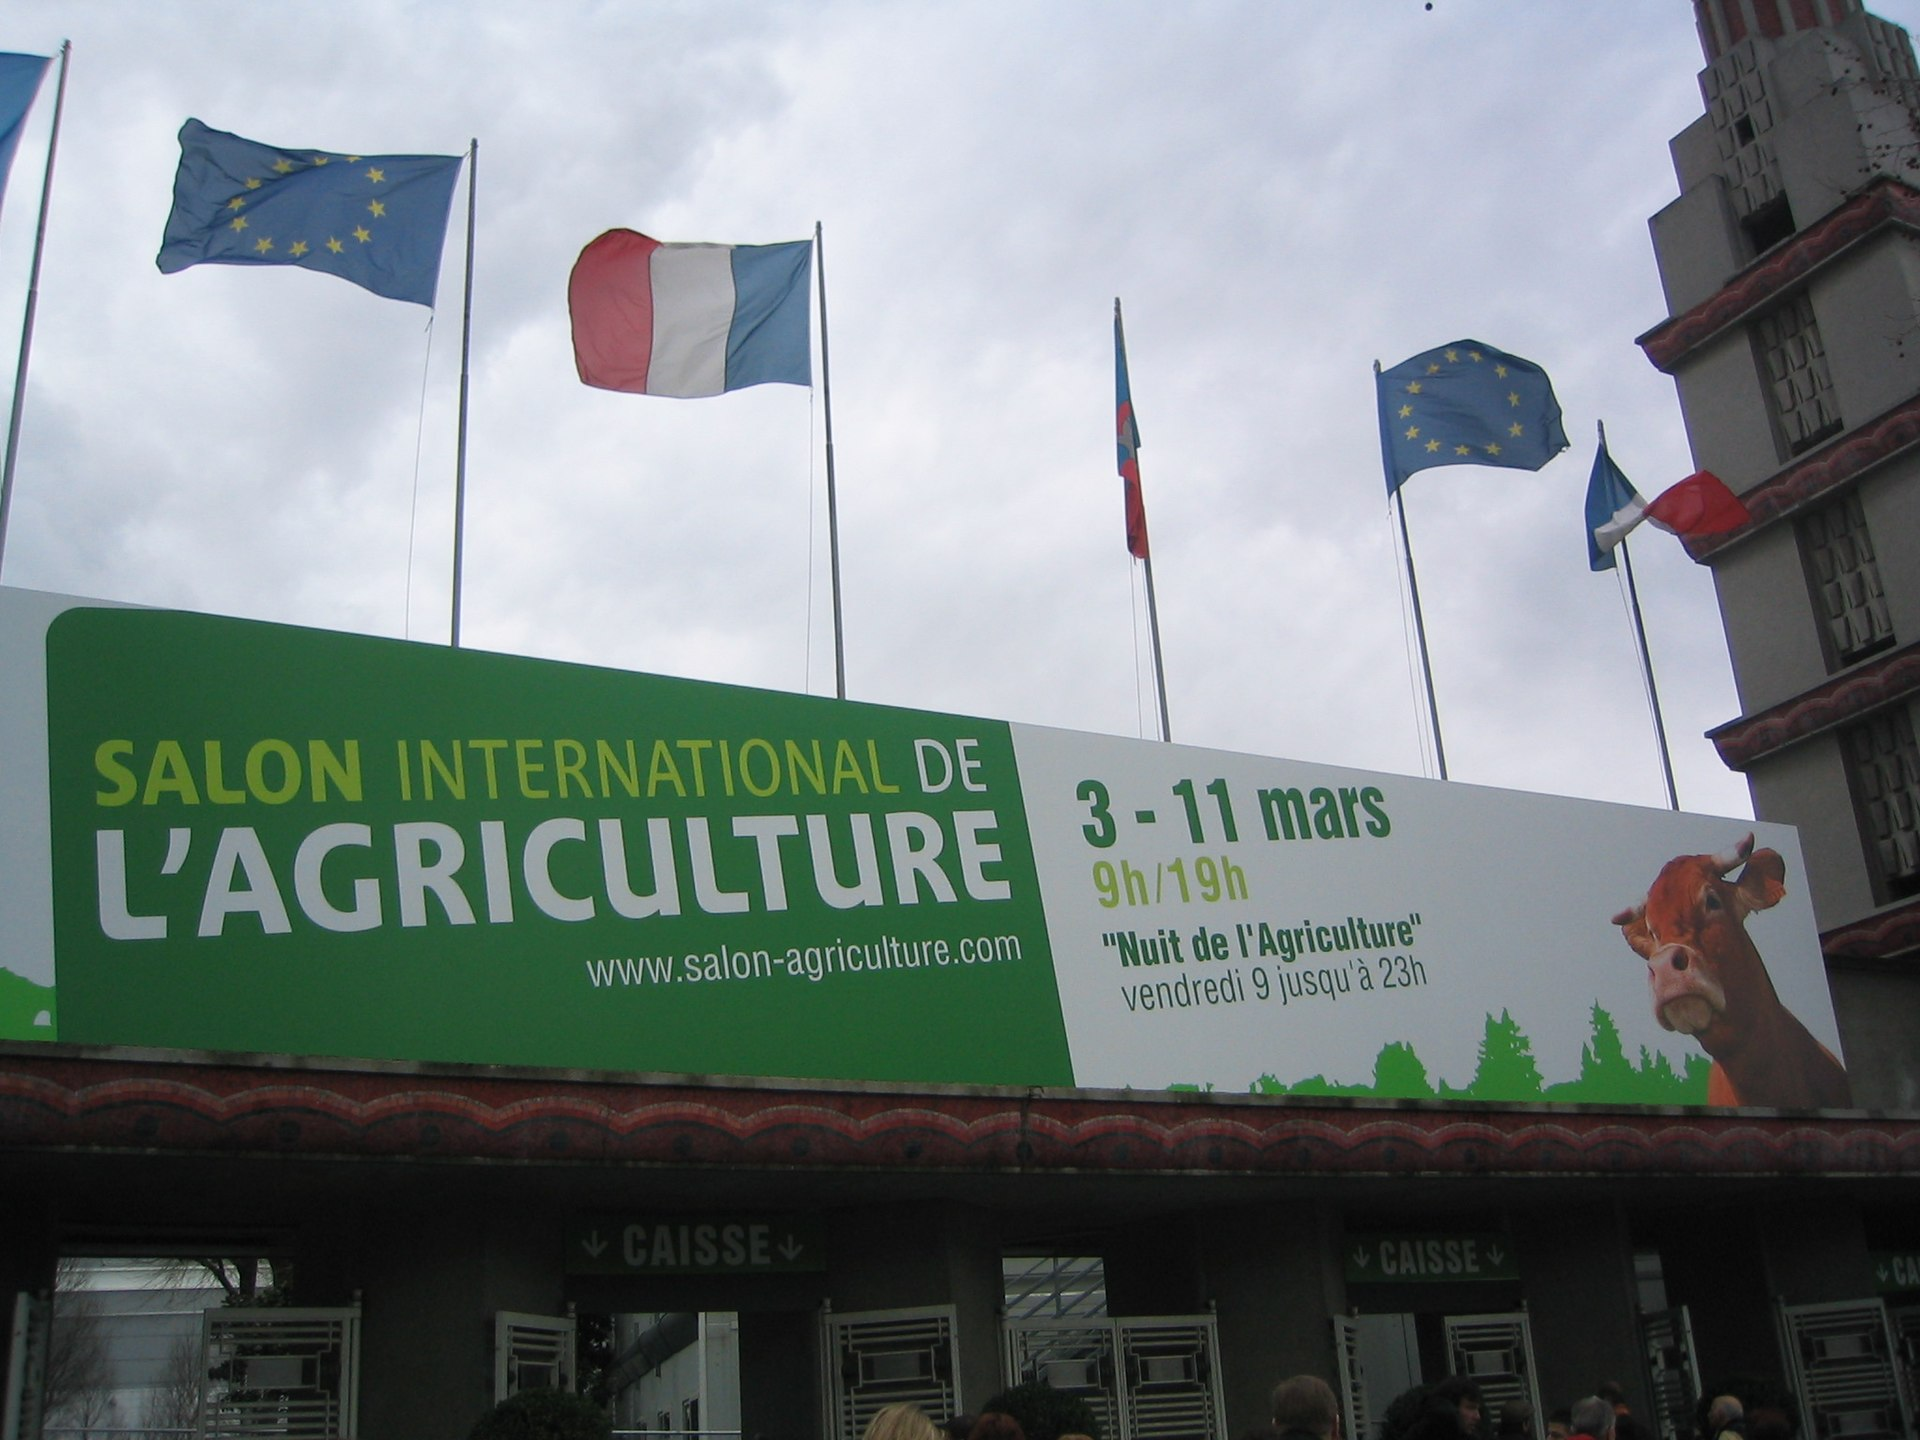 Paris international agricultural show wikipedia for Agriculture salon